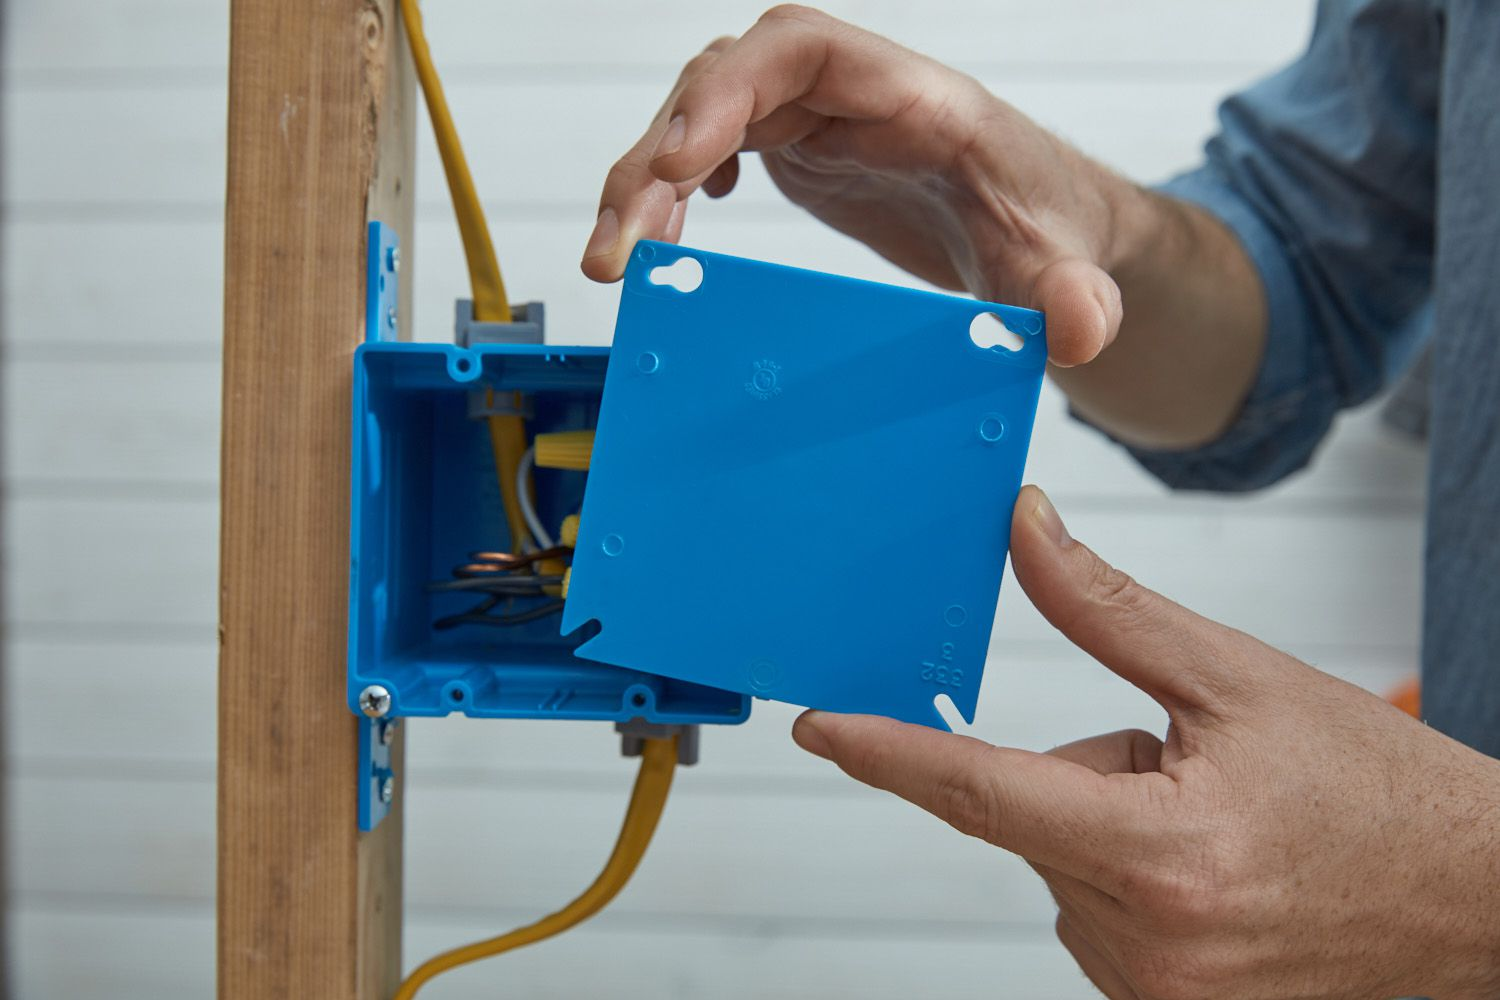 Attach junction box and cover plate